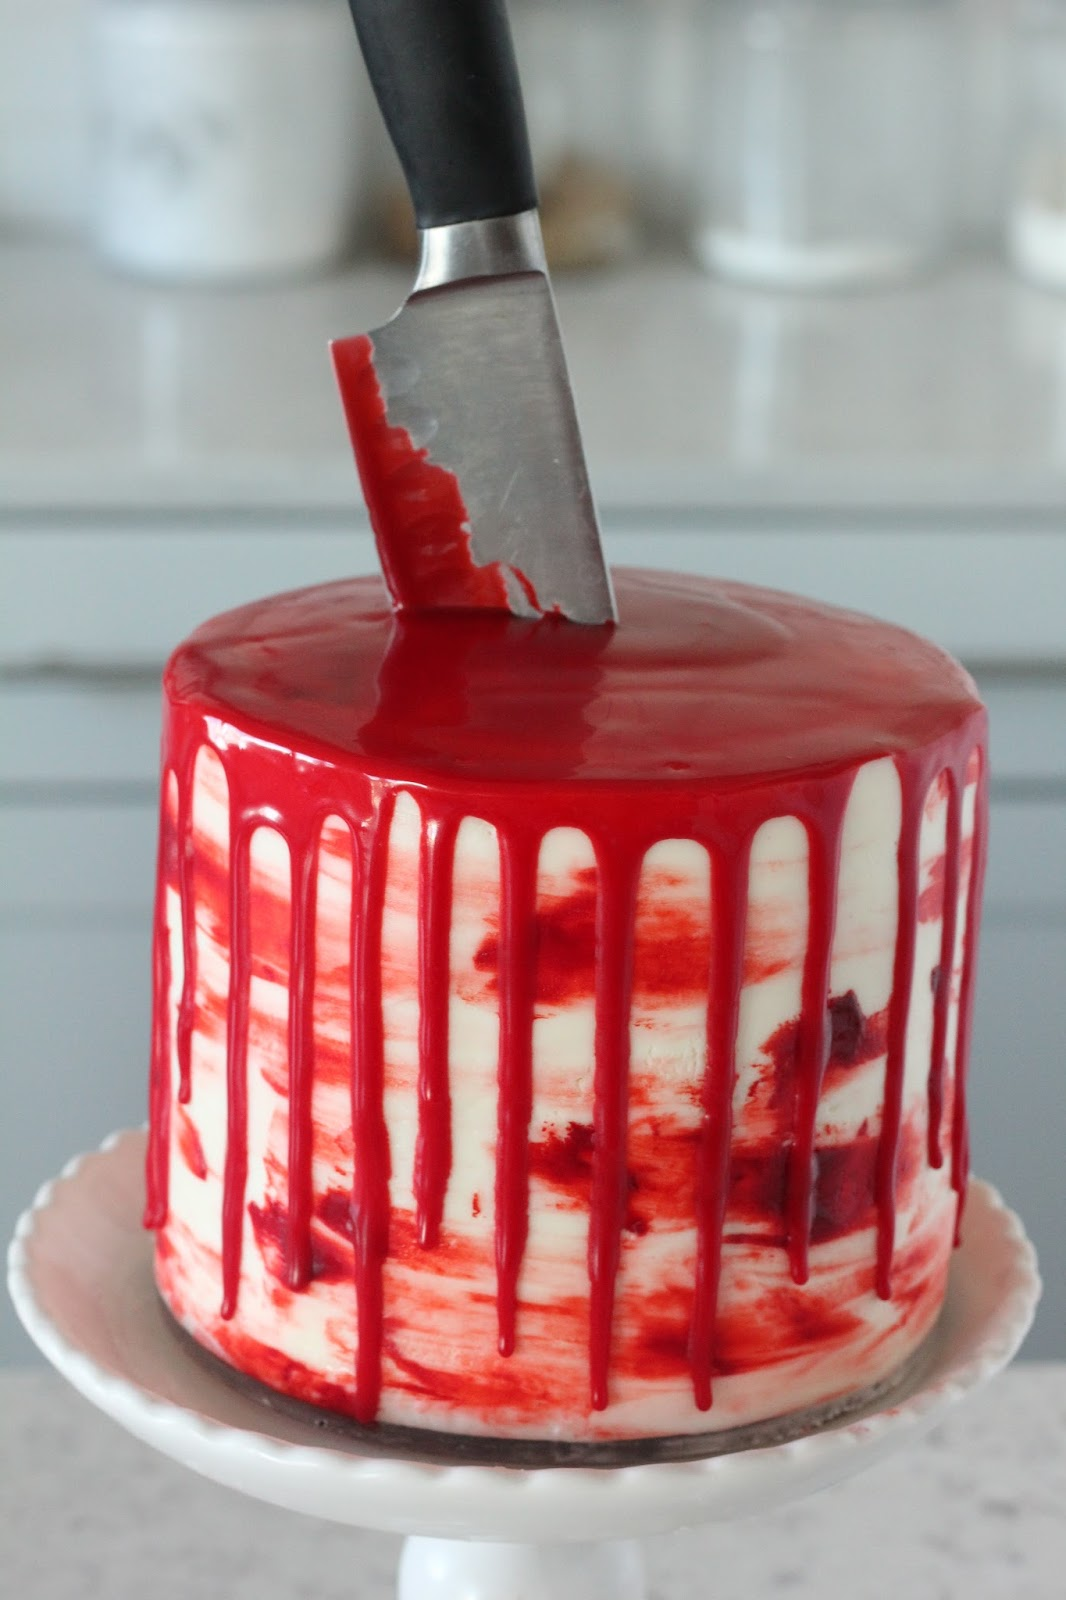 Halloween Bloody Knife Cake (Red Velvet Cake with Almond ...